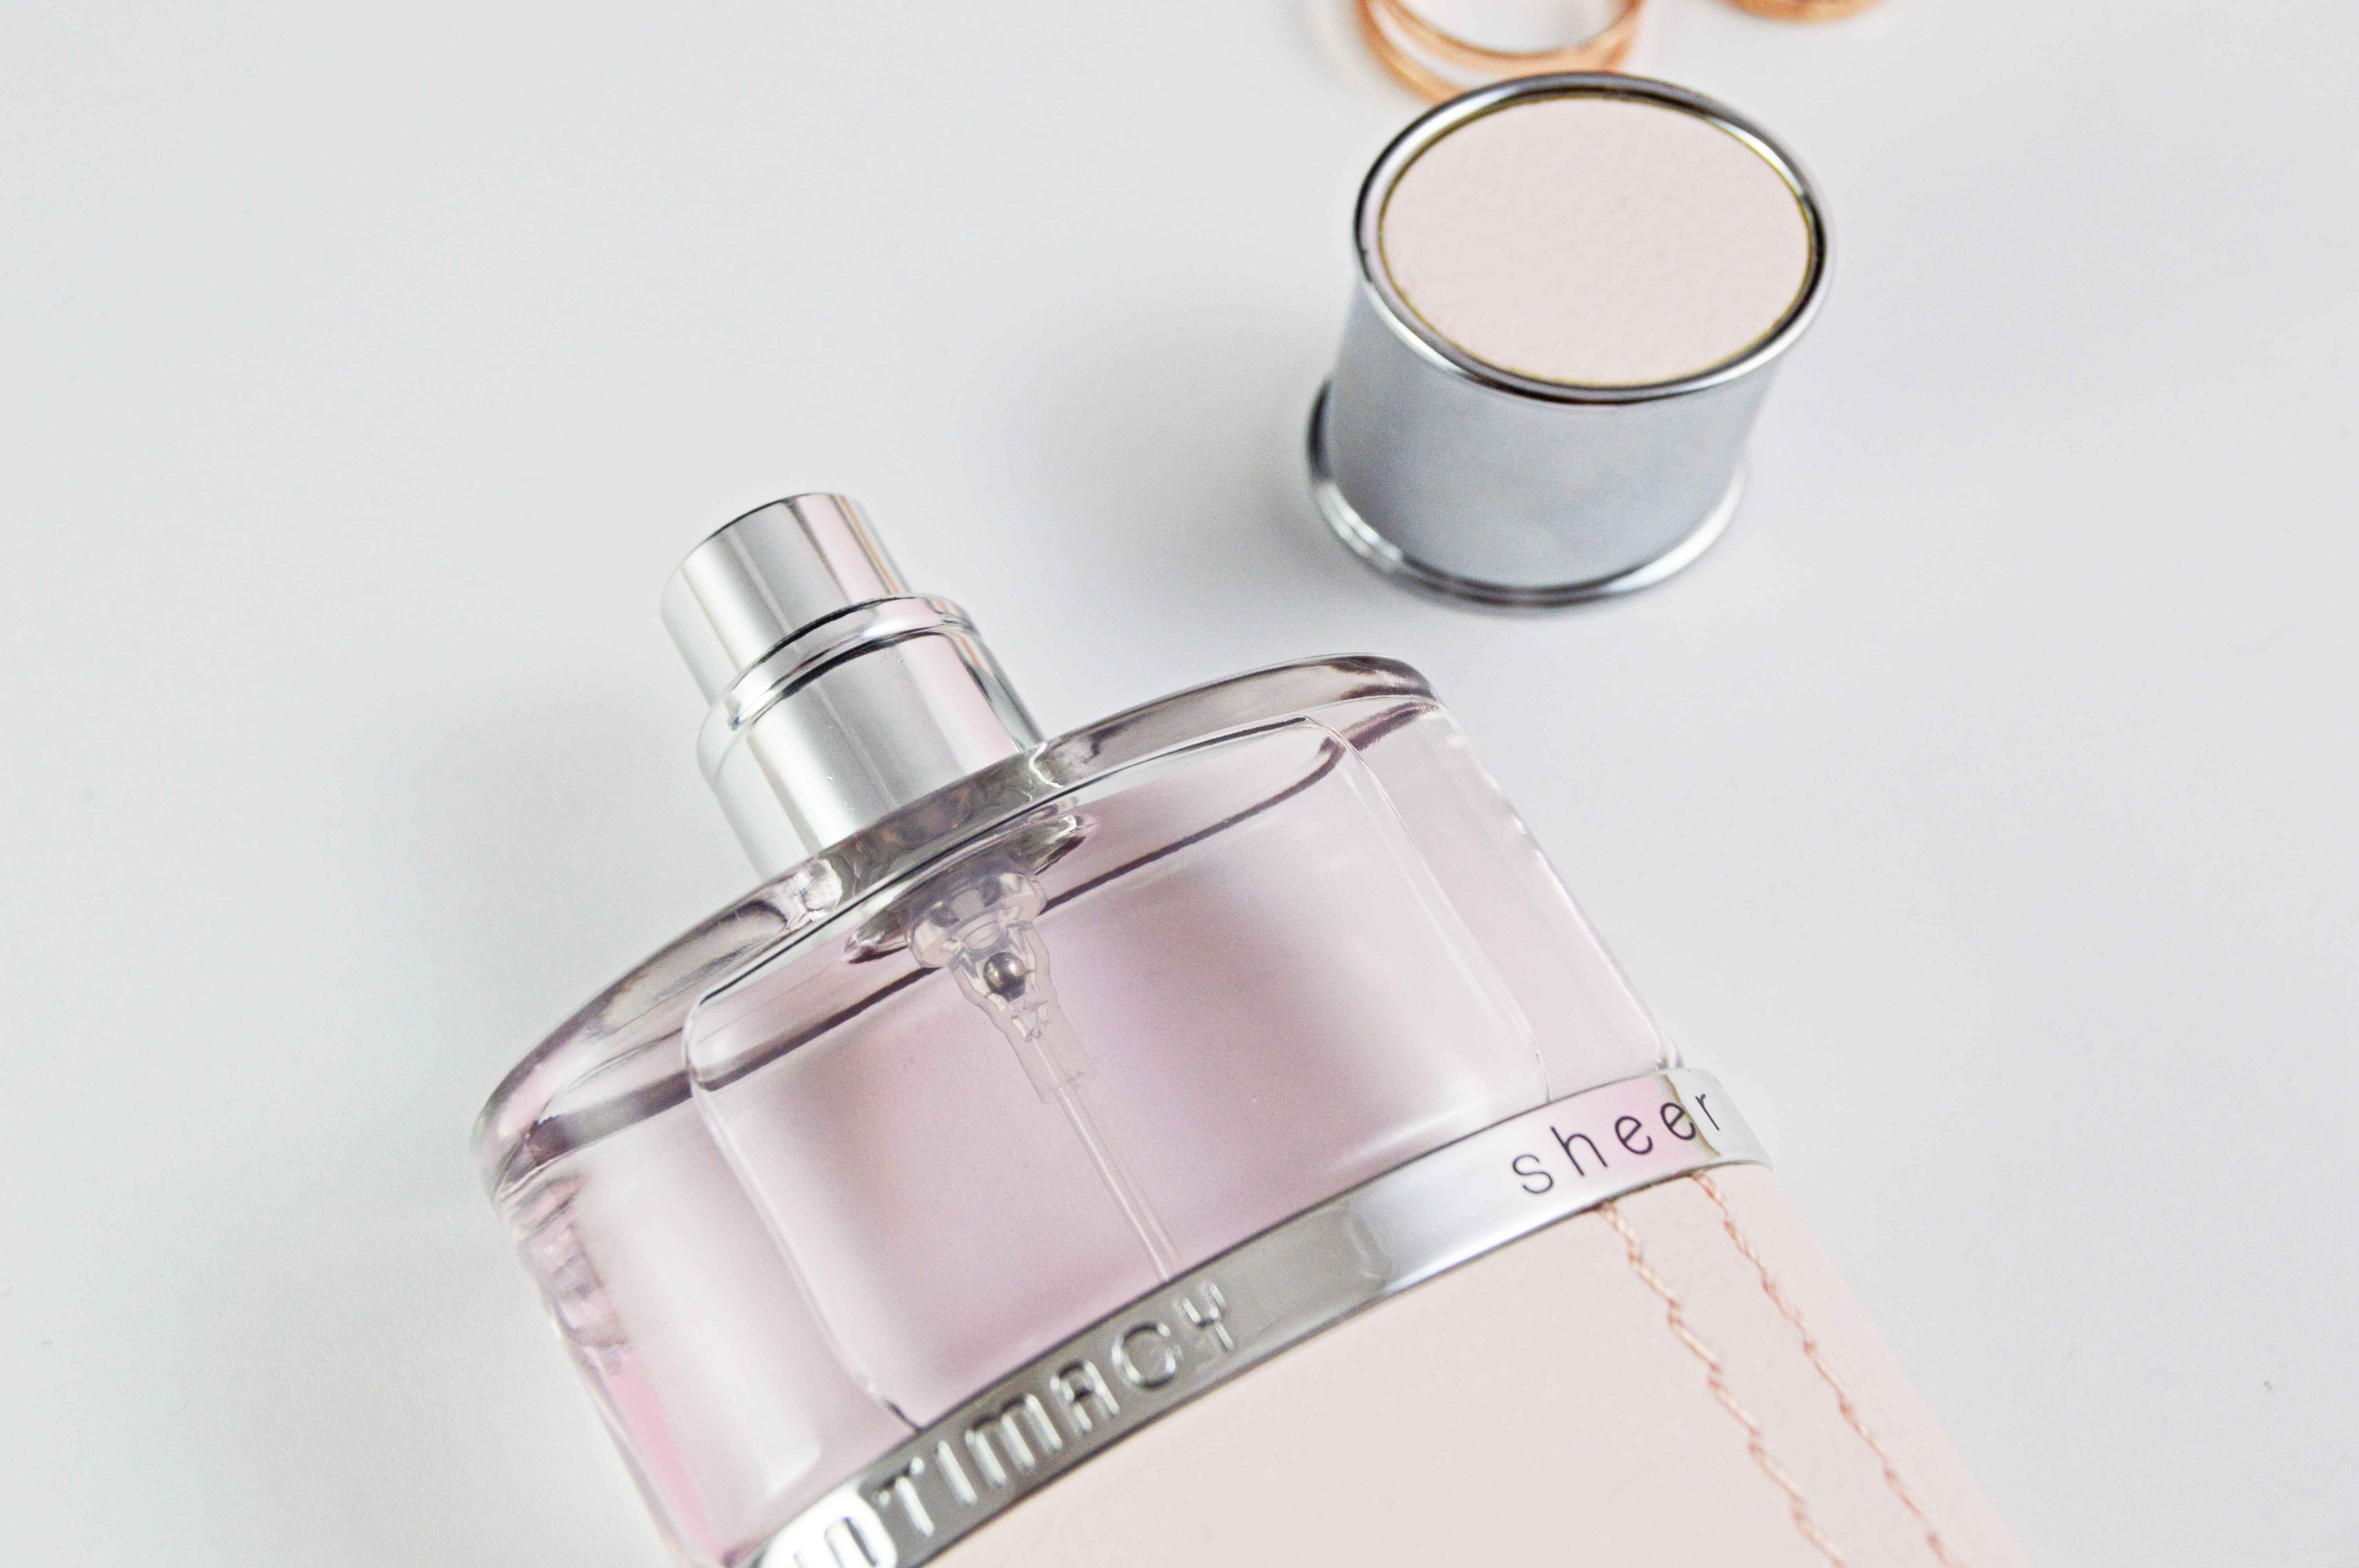 Intimacy sheer parfum